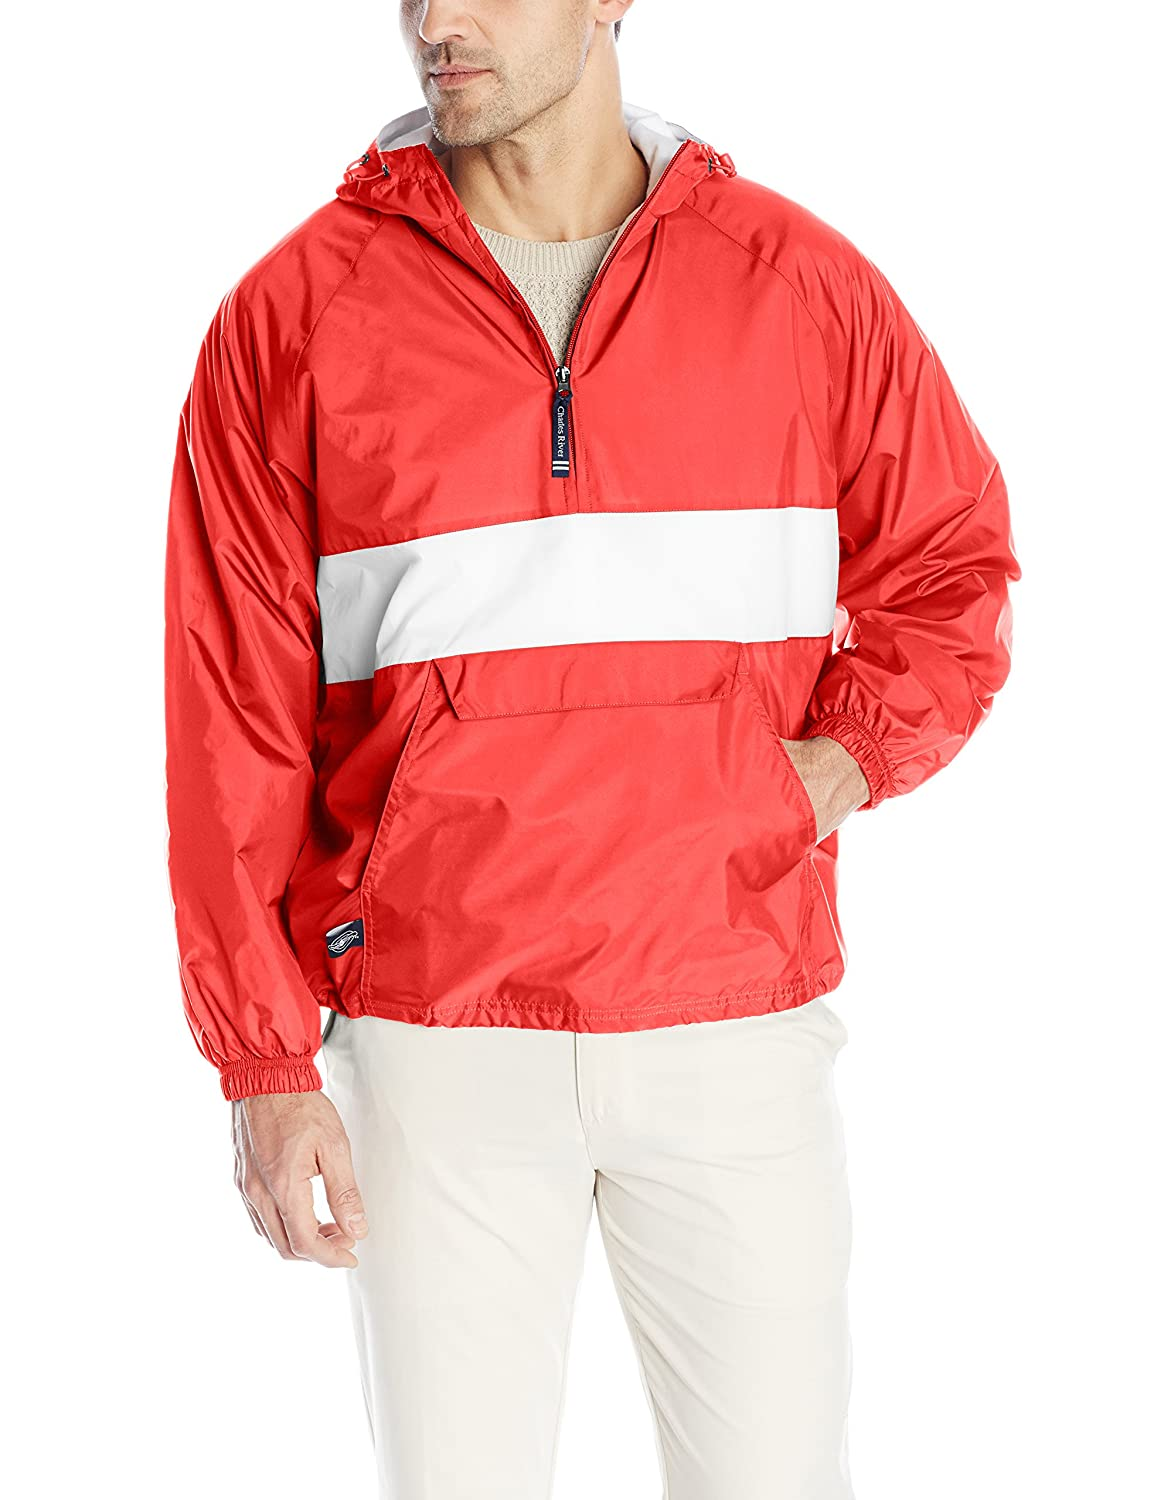 Charles River Apparel Men's Classic Striped Pullover Jacket 9908